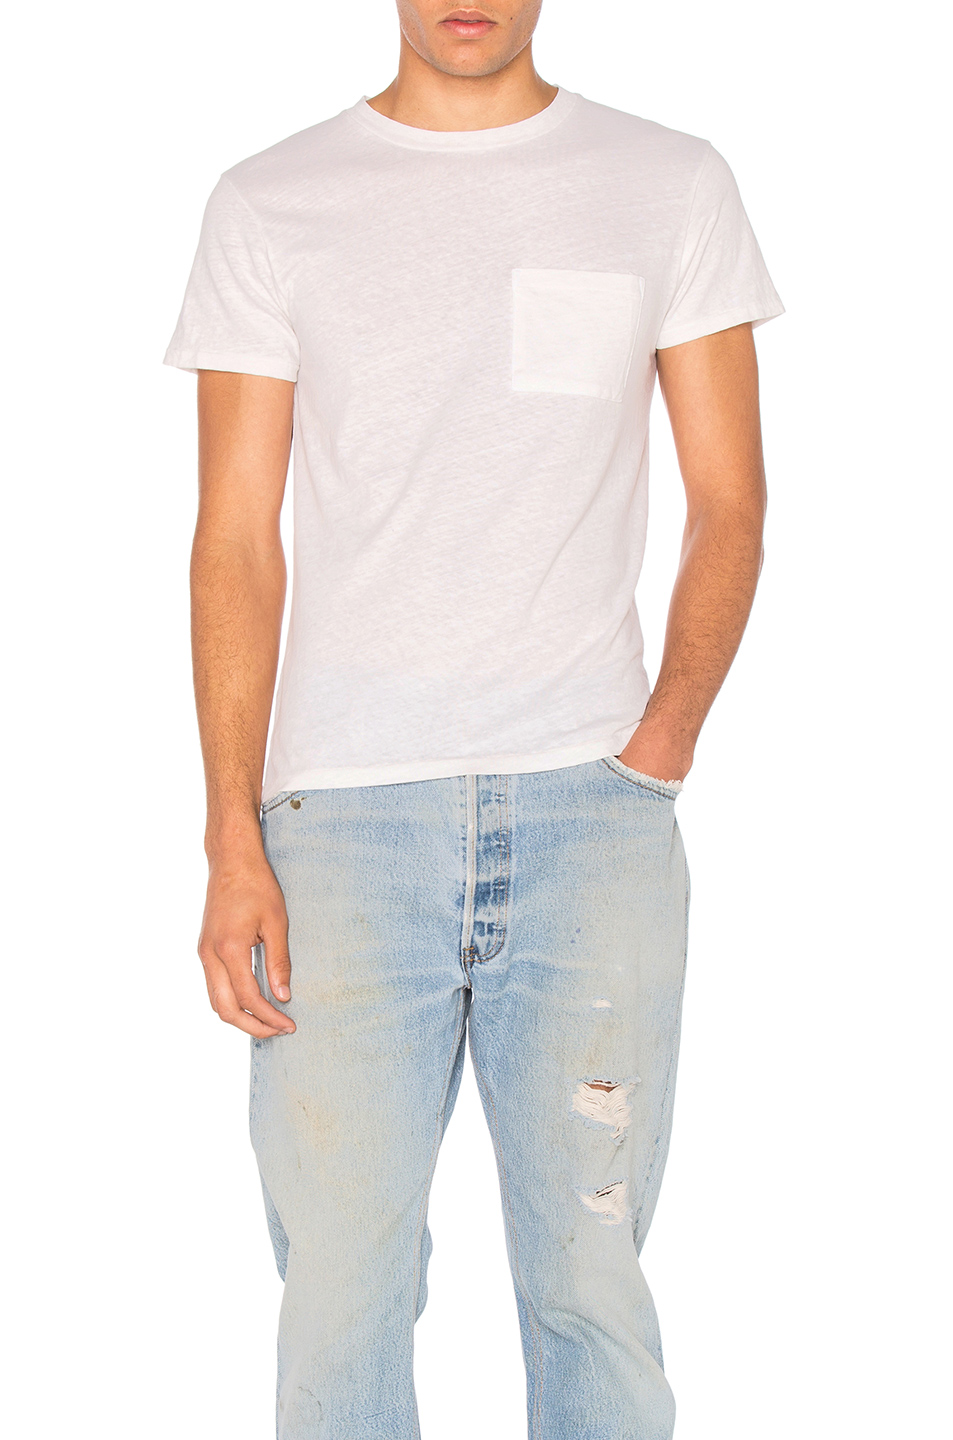 RE/DONE 1960s Slim Pocket Tee in White